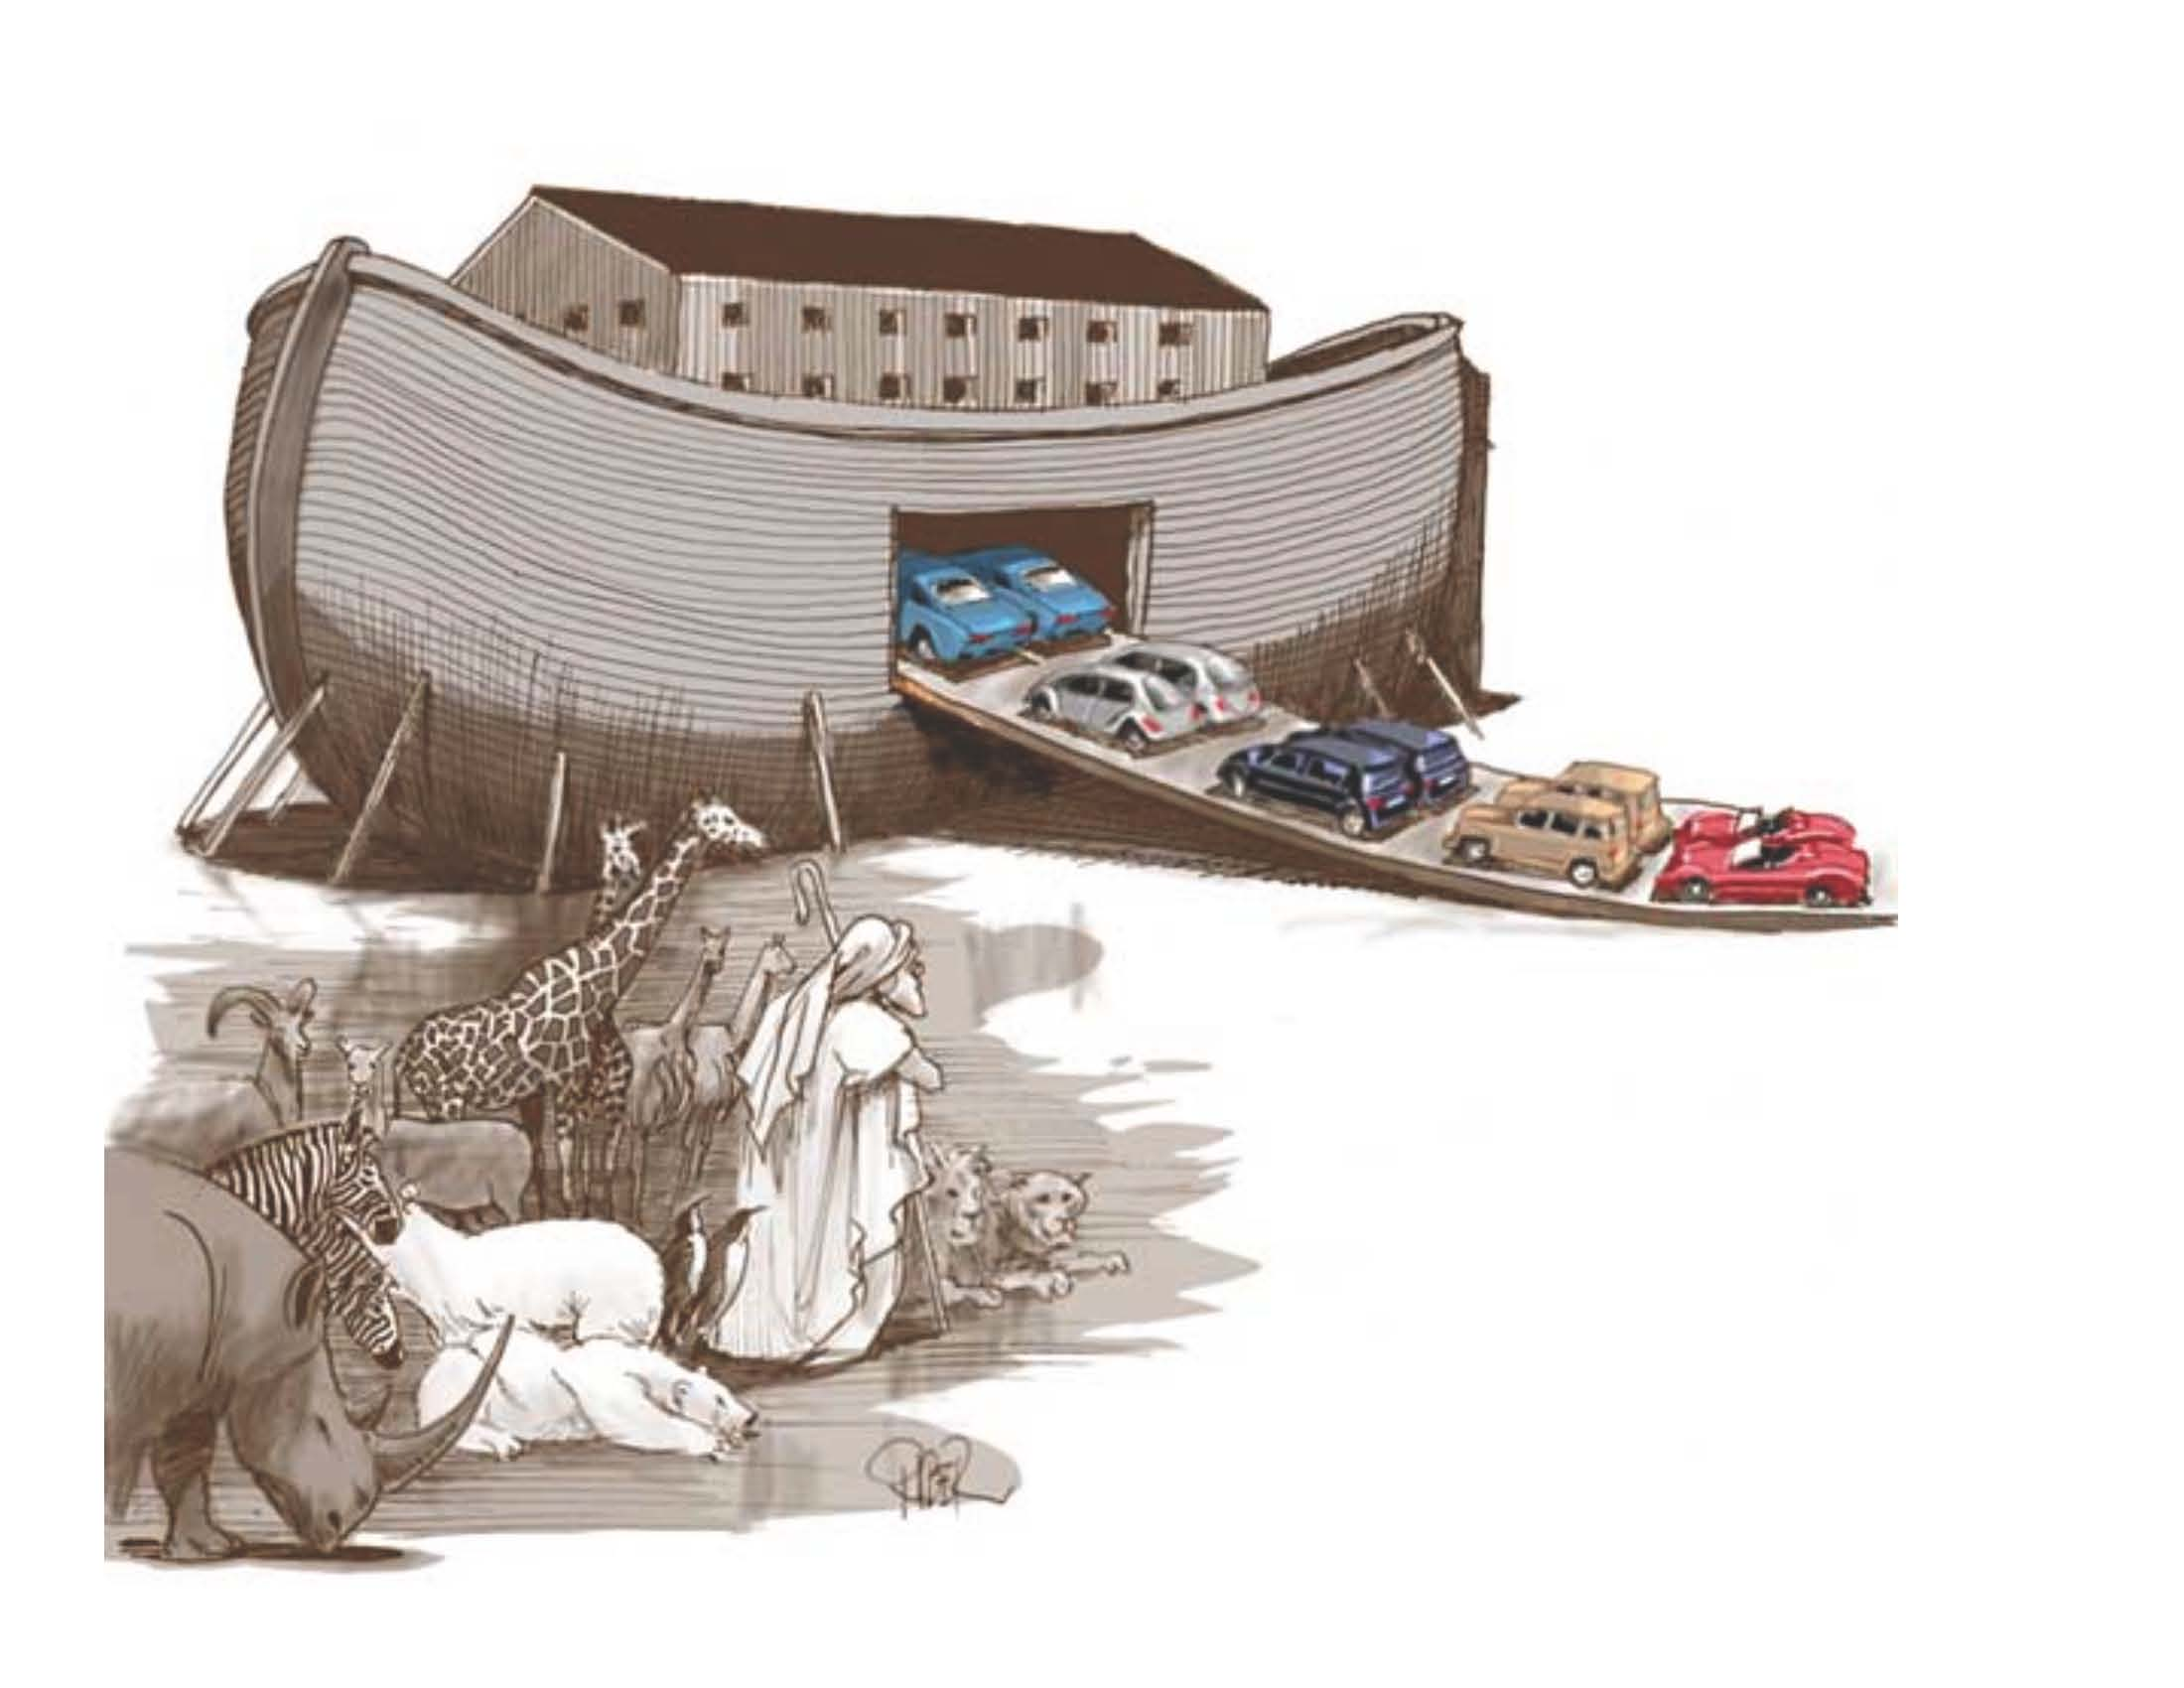 Noahs Ark Record Retention Cartoons